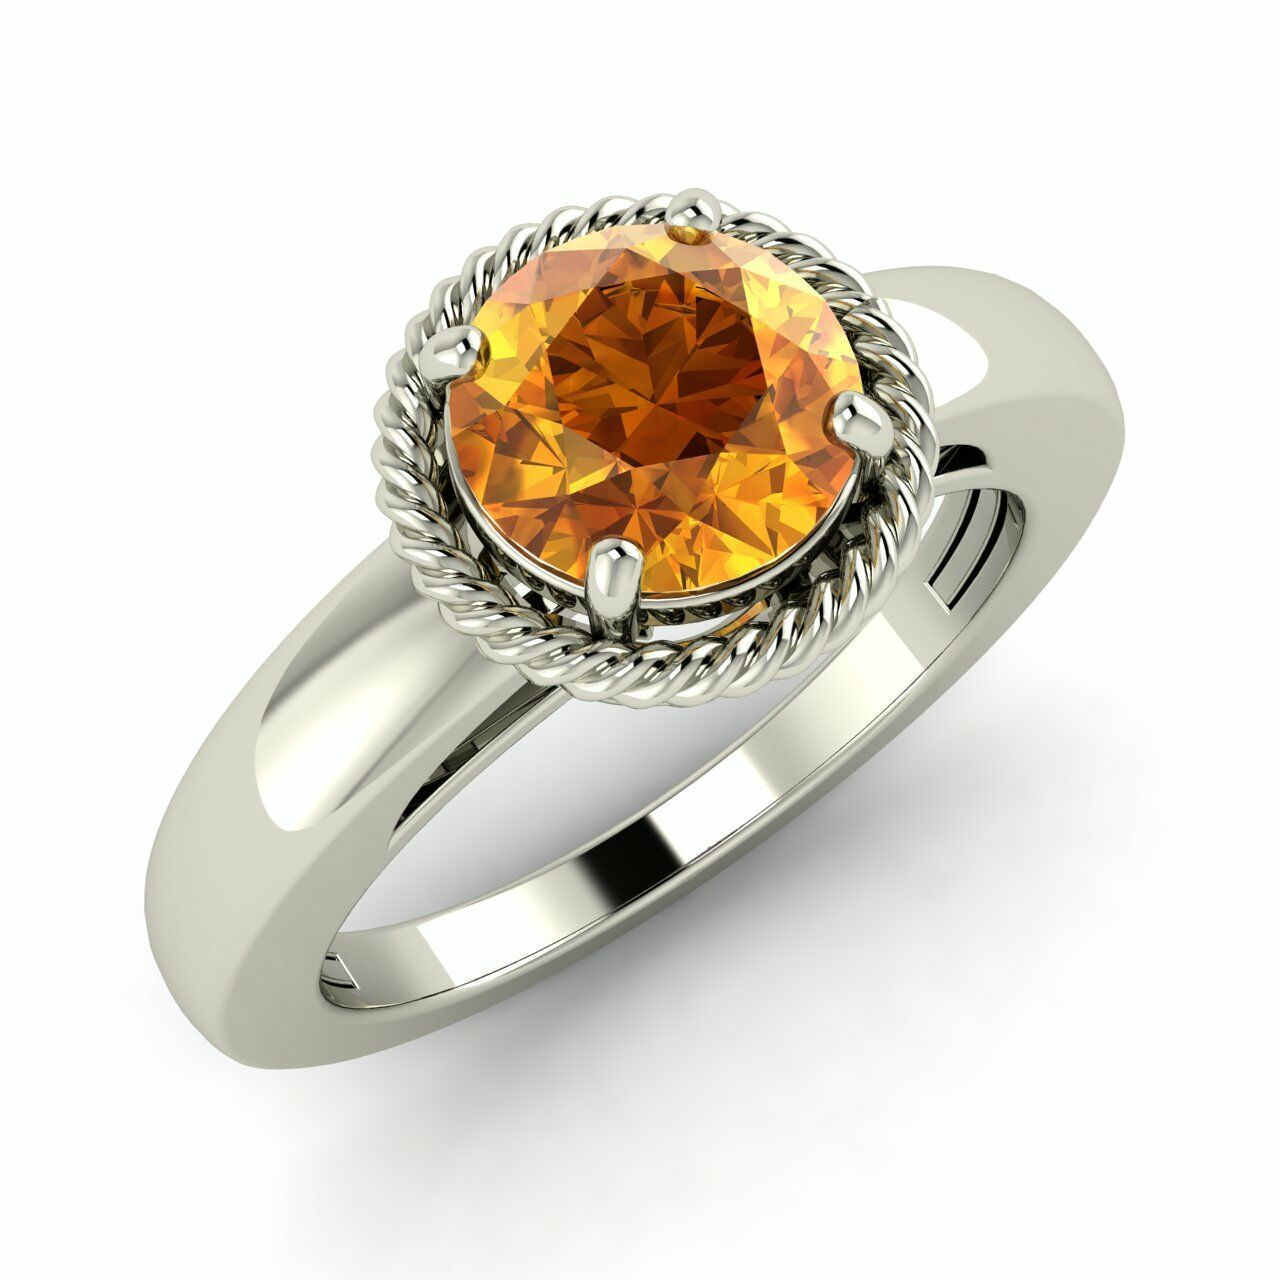 Certified 0.97 Cts Real Citrine 14K White gold Twisted Design Solitaire Ring